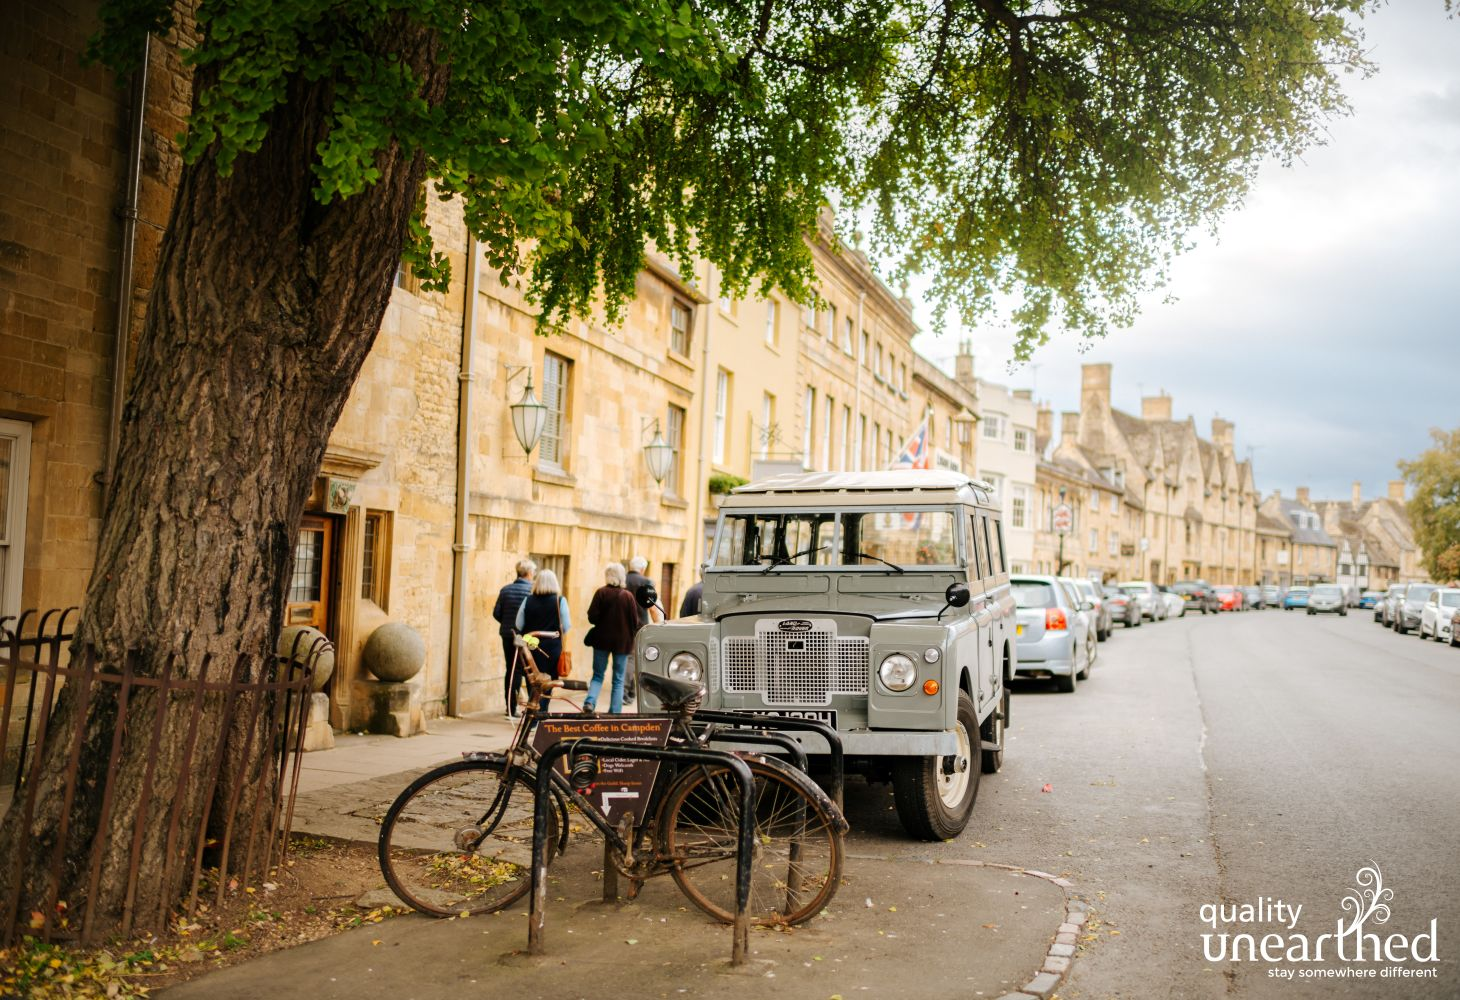 A street in Chipping Campden shows off the local yellow Cotswold stone